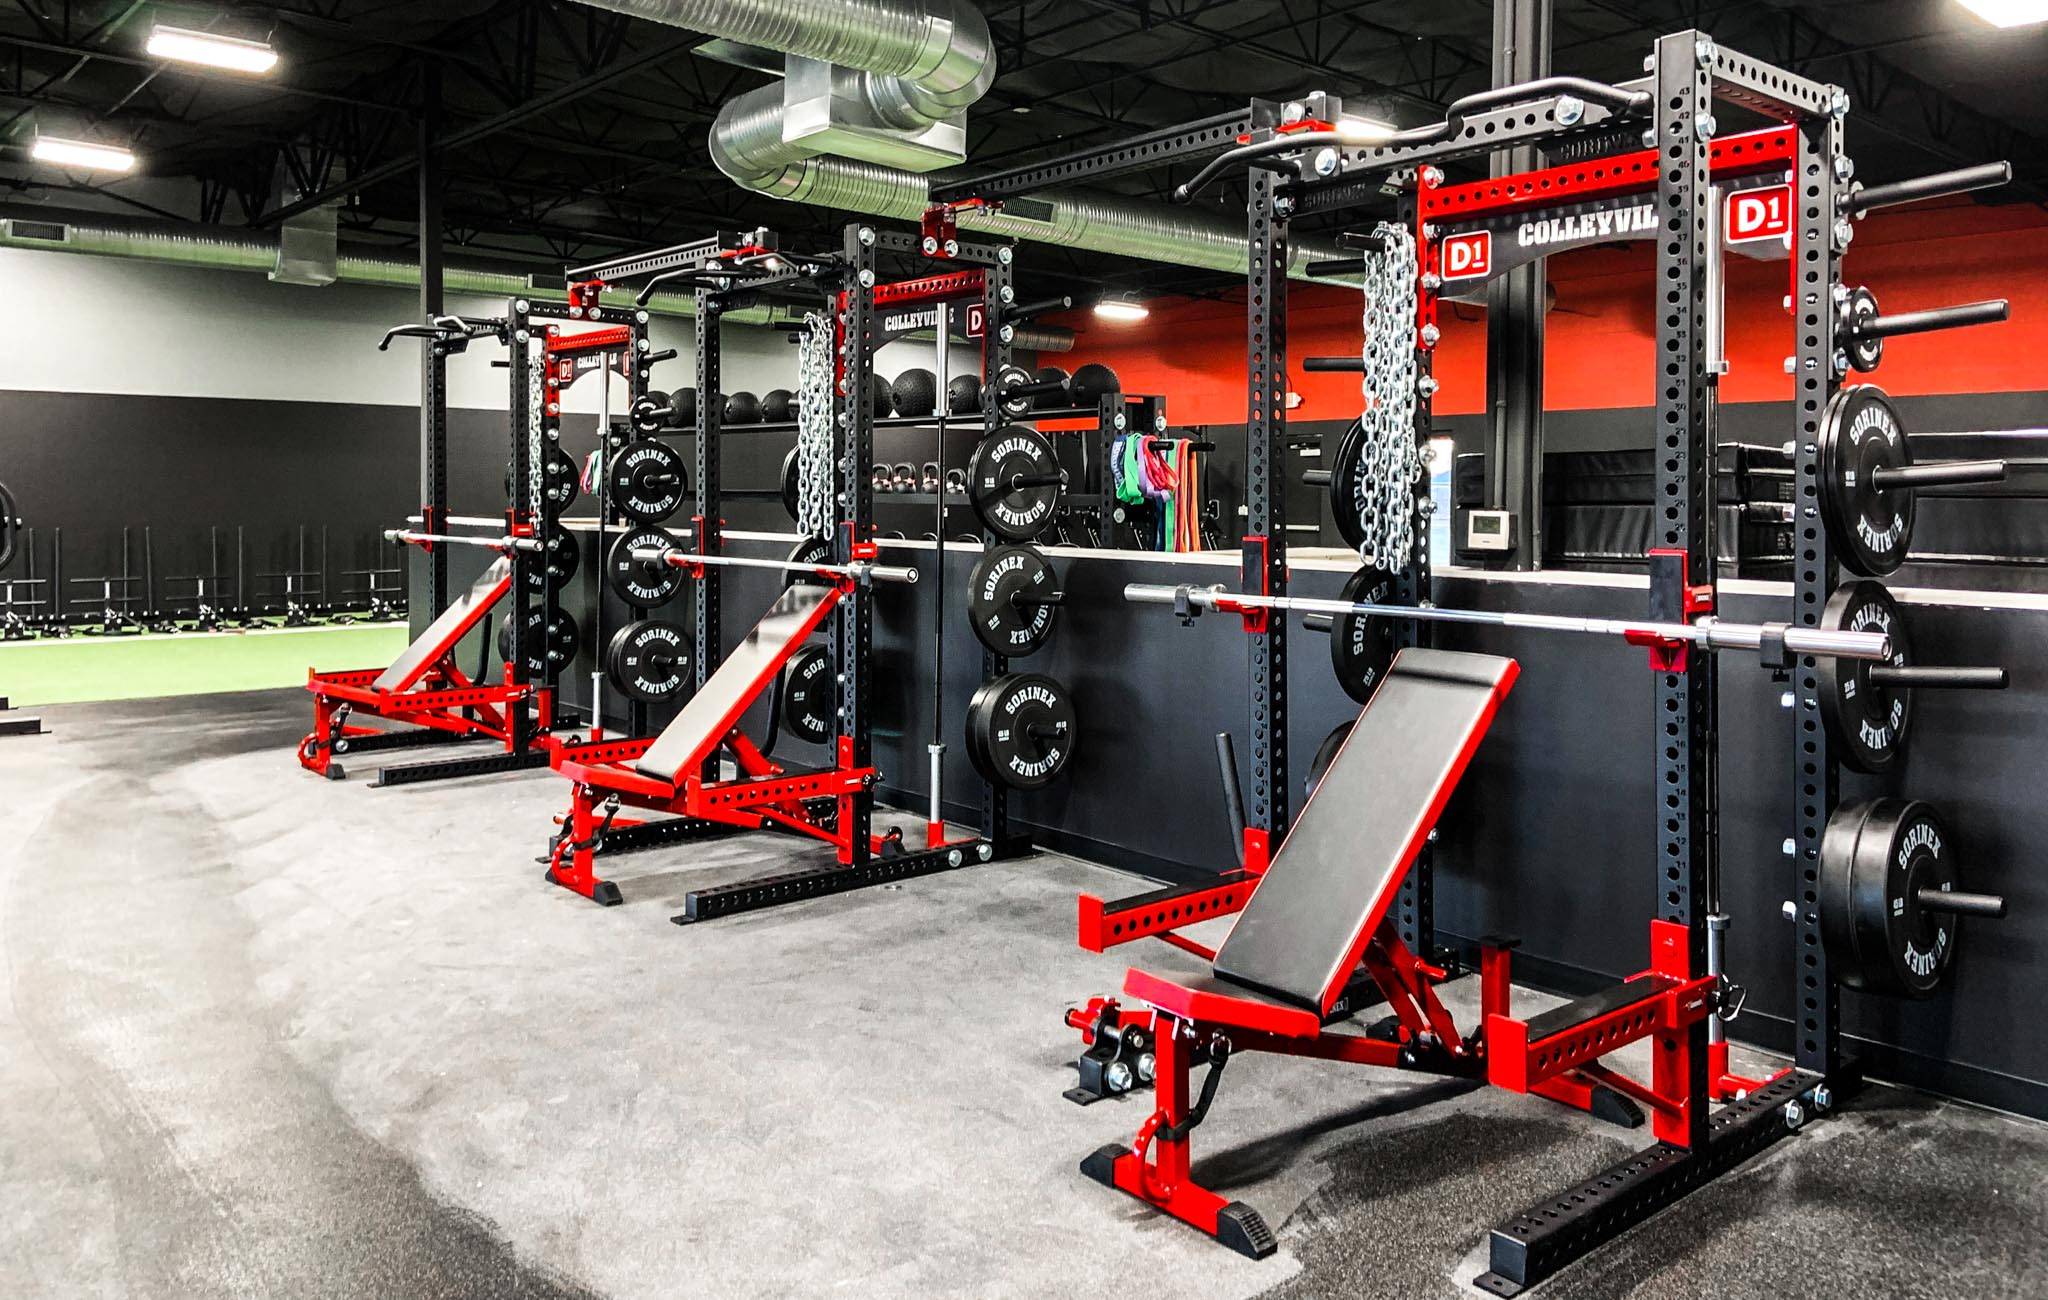 D1 Colleyville weight room